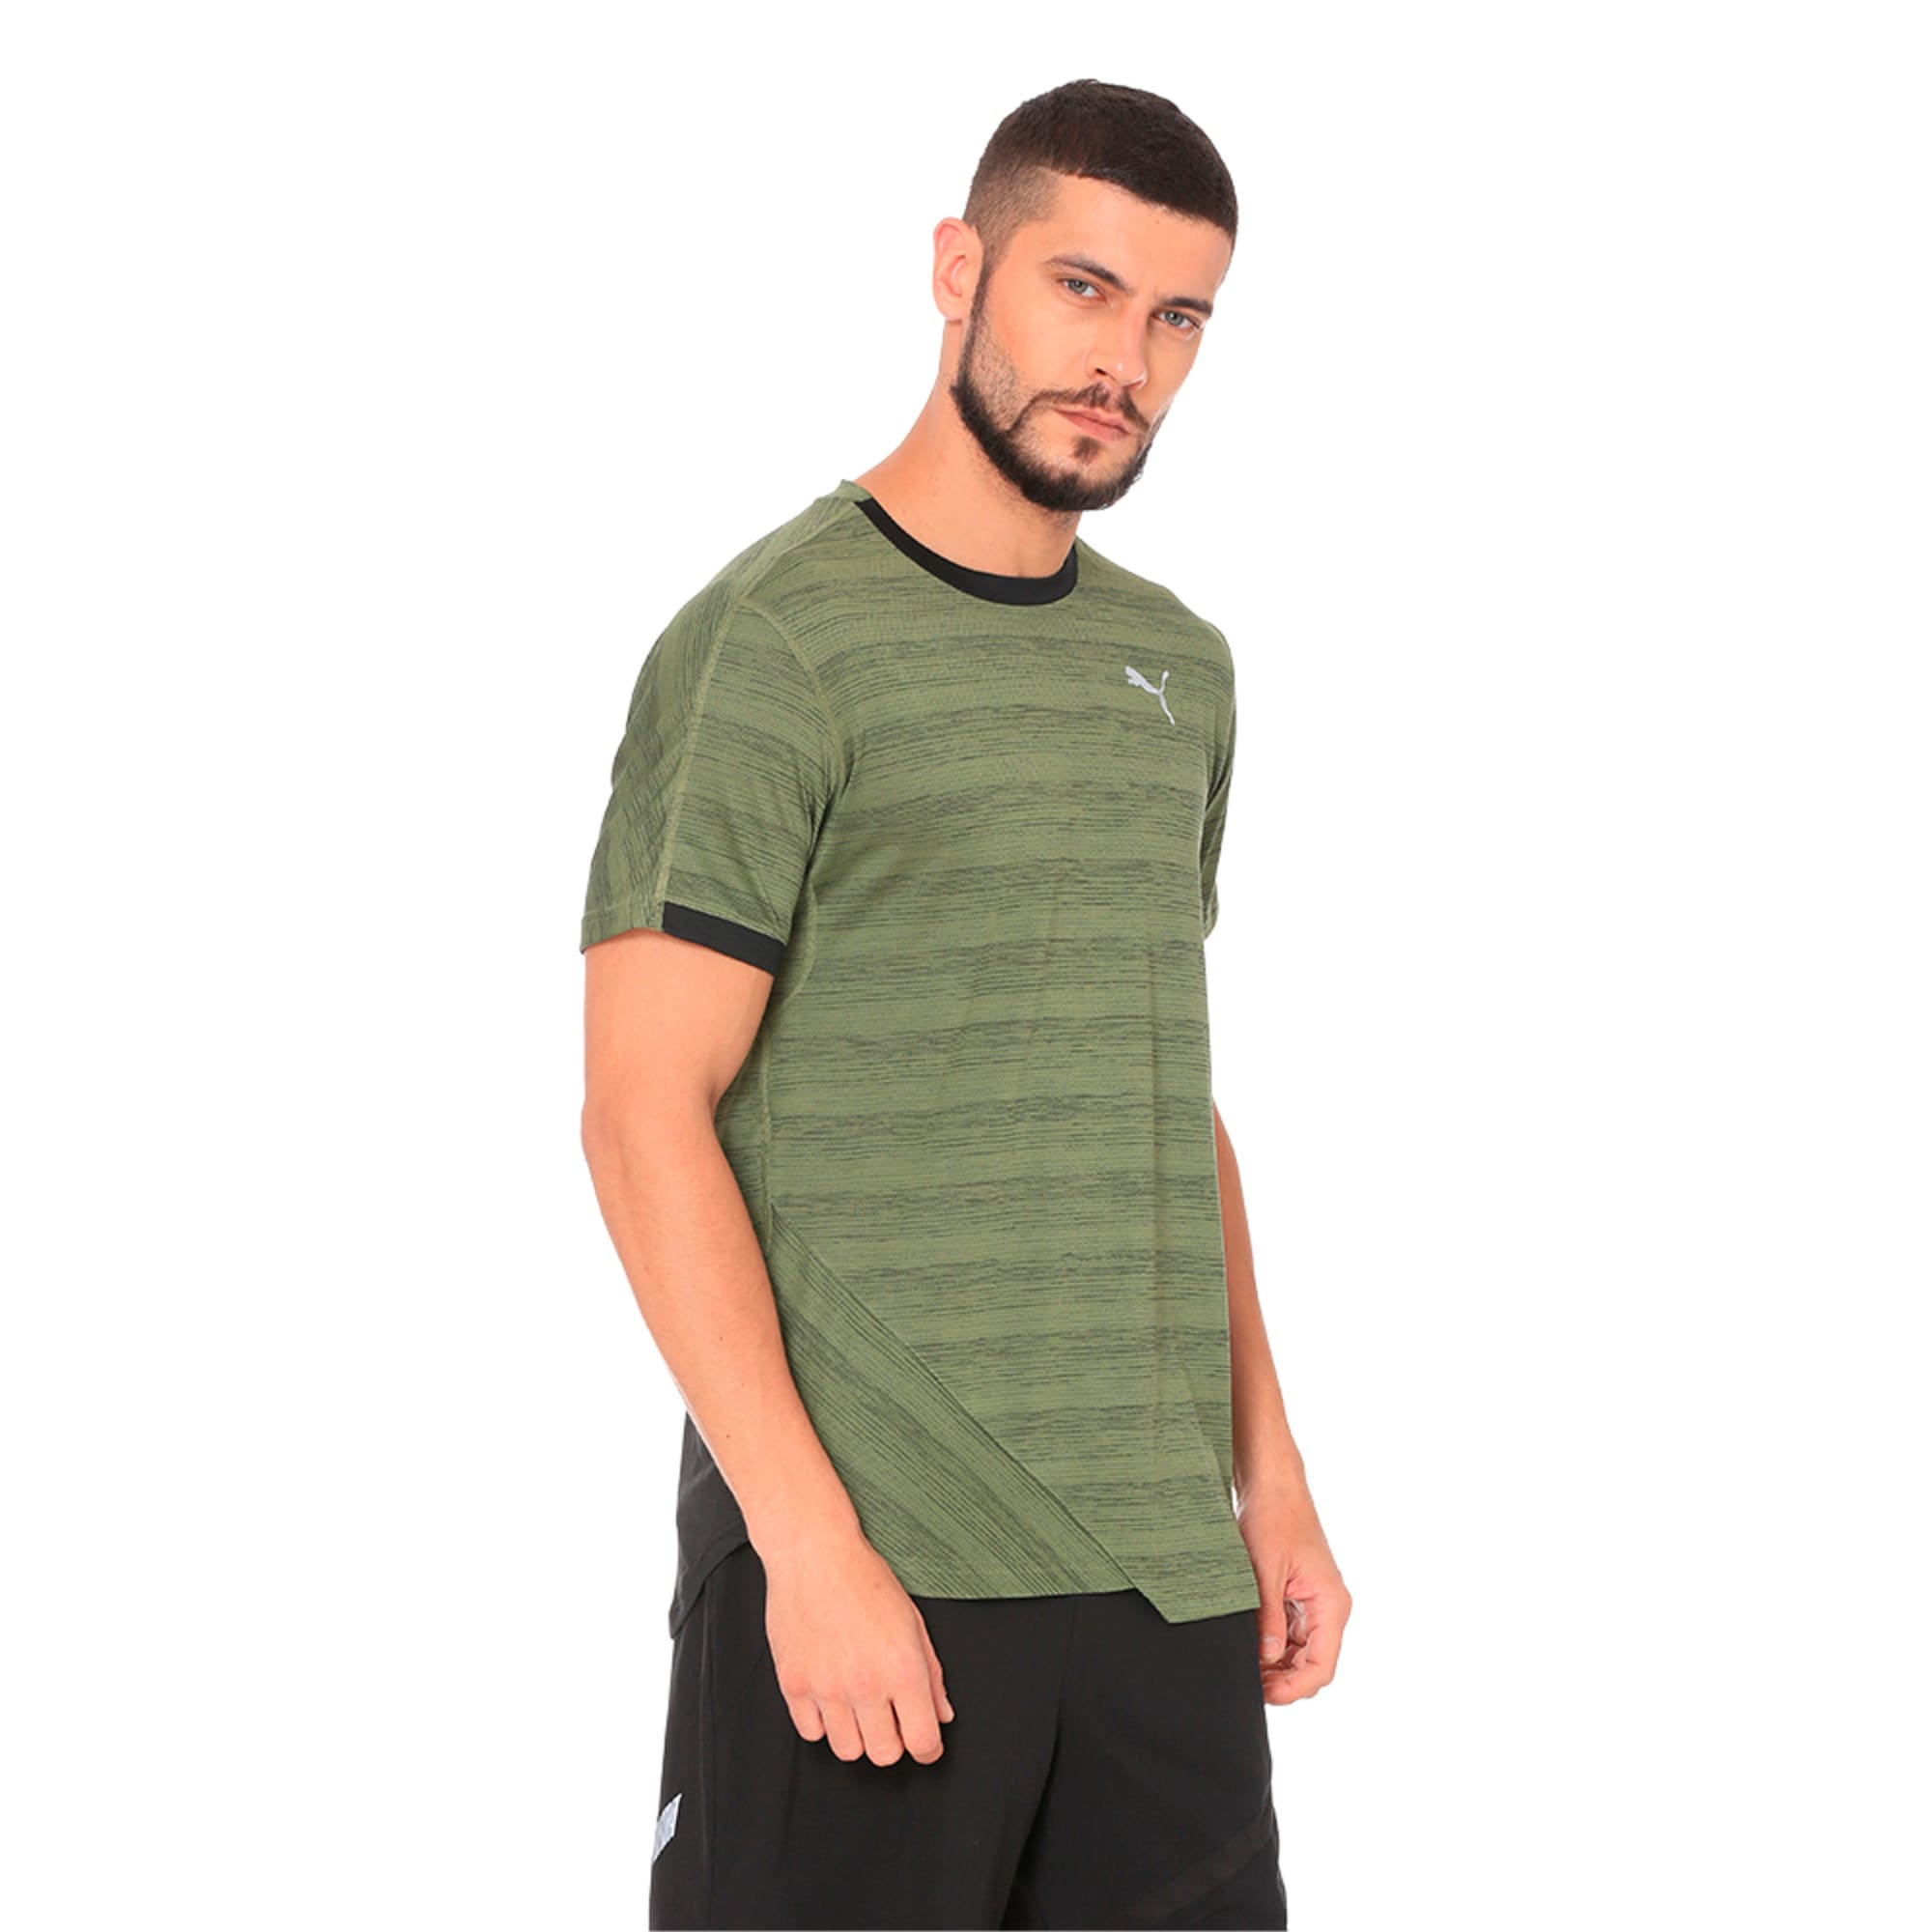 PACE Breeze Short Sleeve Men's Running Tee, Olivine-Puma Black, large-IND